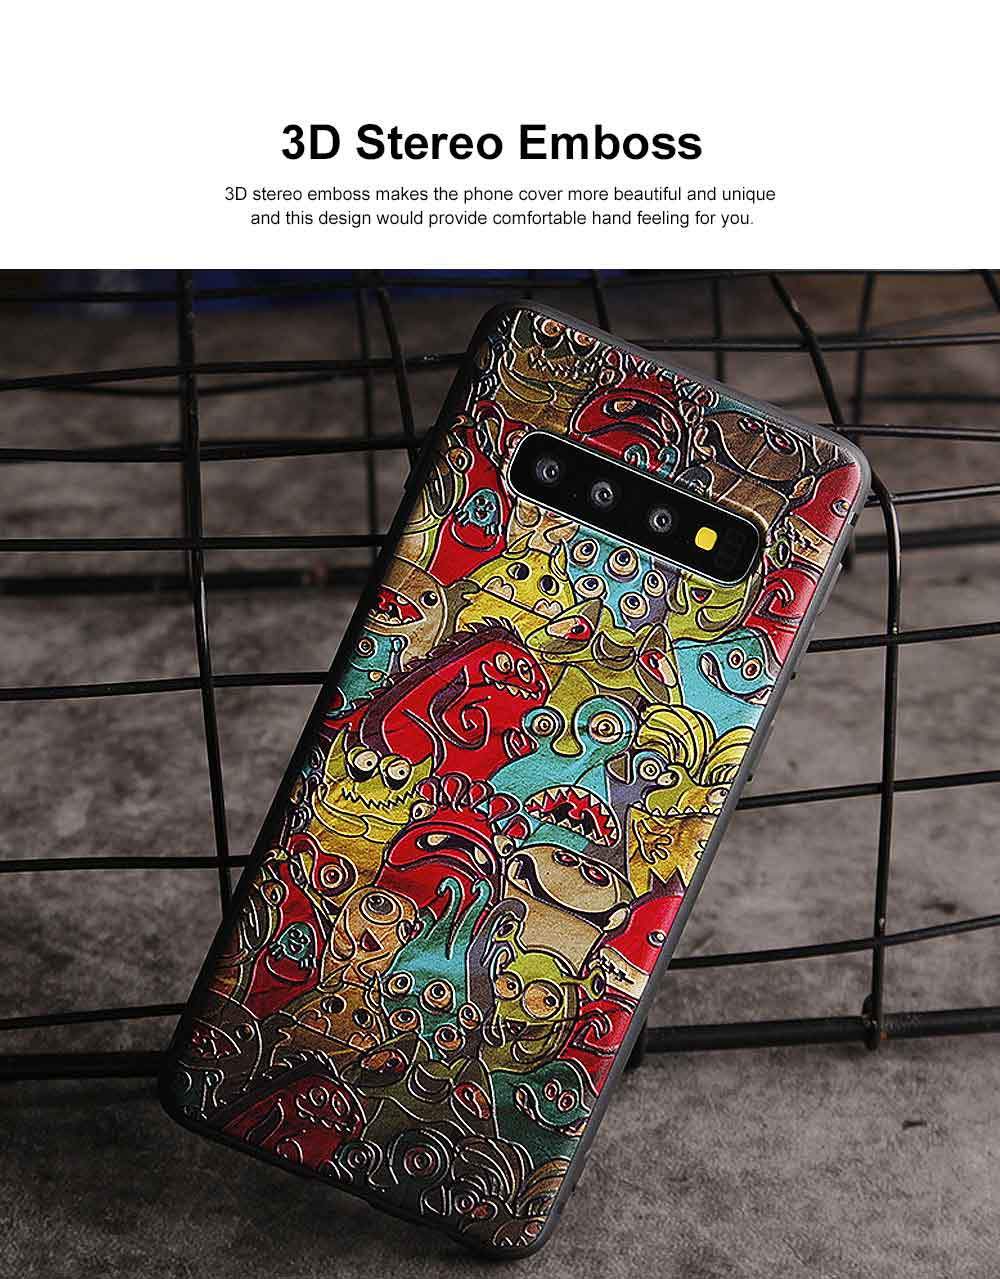 Creative Stylish Carton 3D Emboss Phone Case, Soft Silicone Colorful Painting Phone Skins, Full Protection Phone Cover for Samsung S10+ S10e S10 Plus with Rope 1